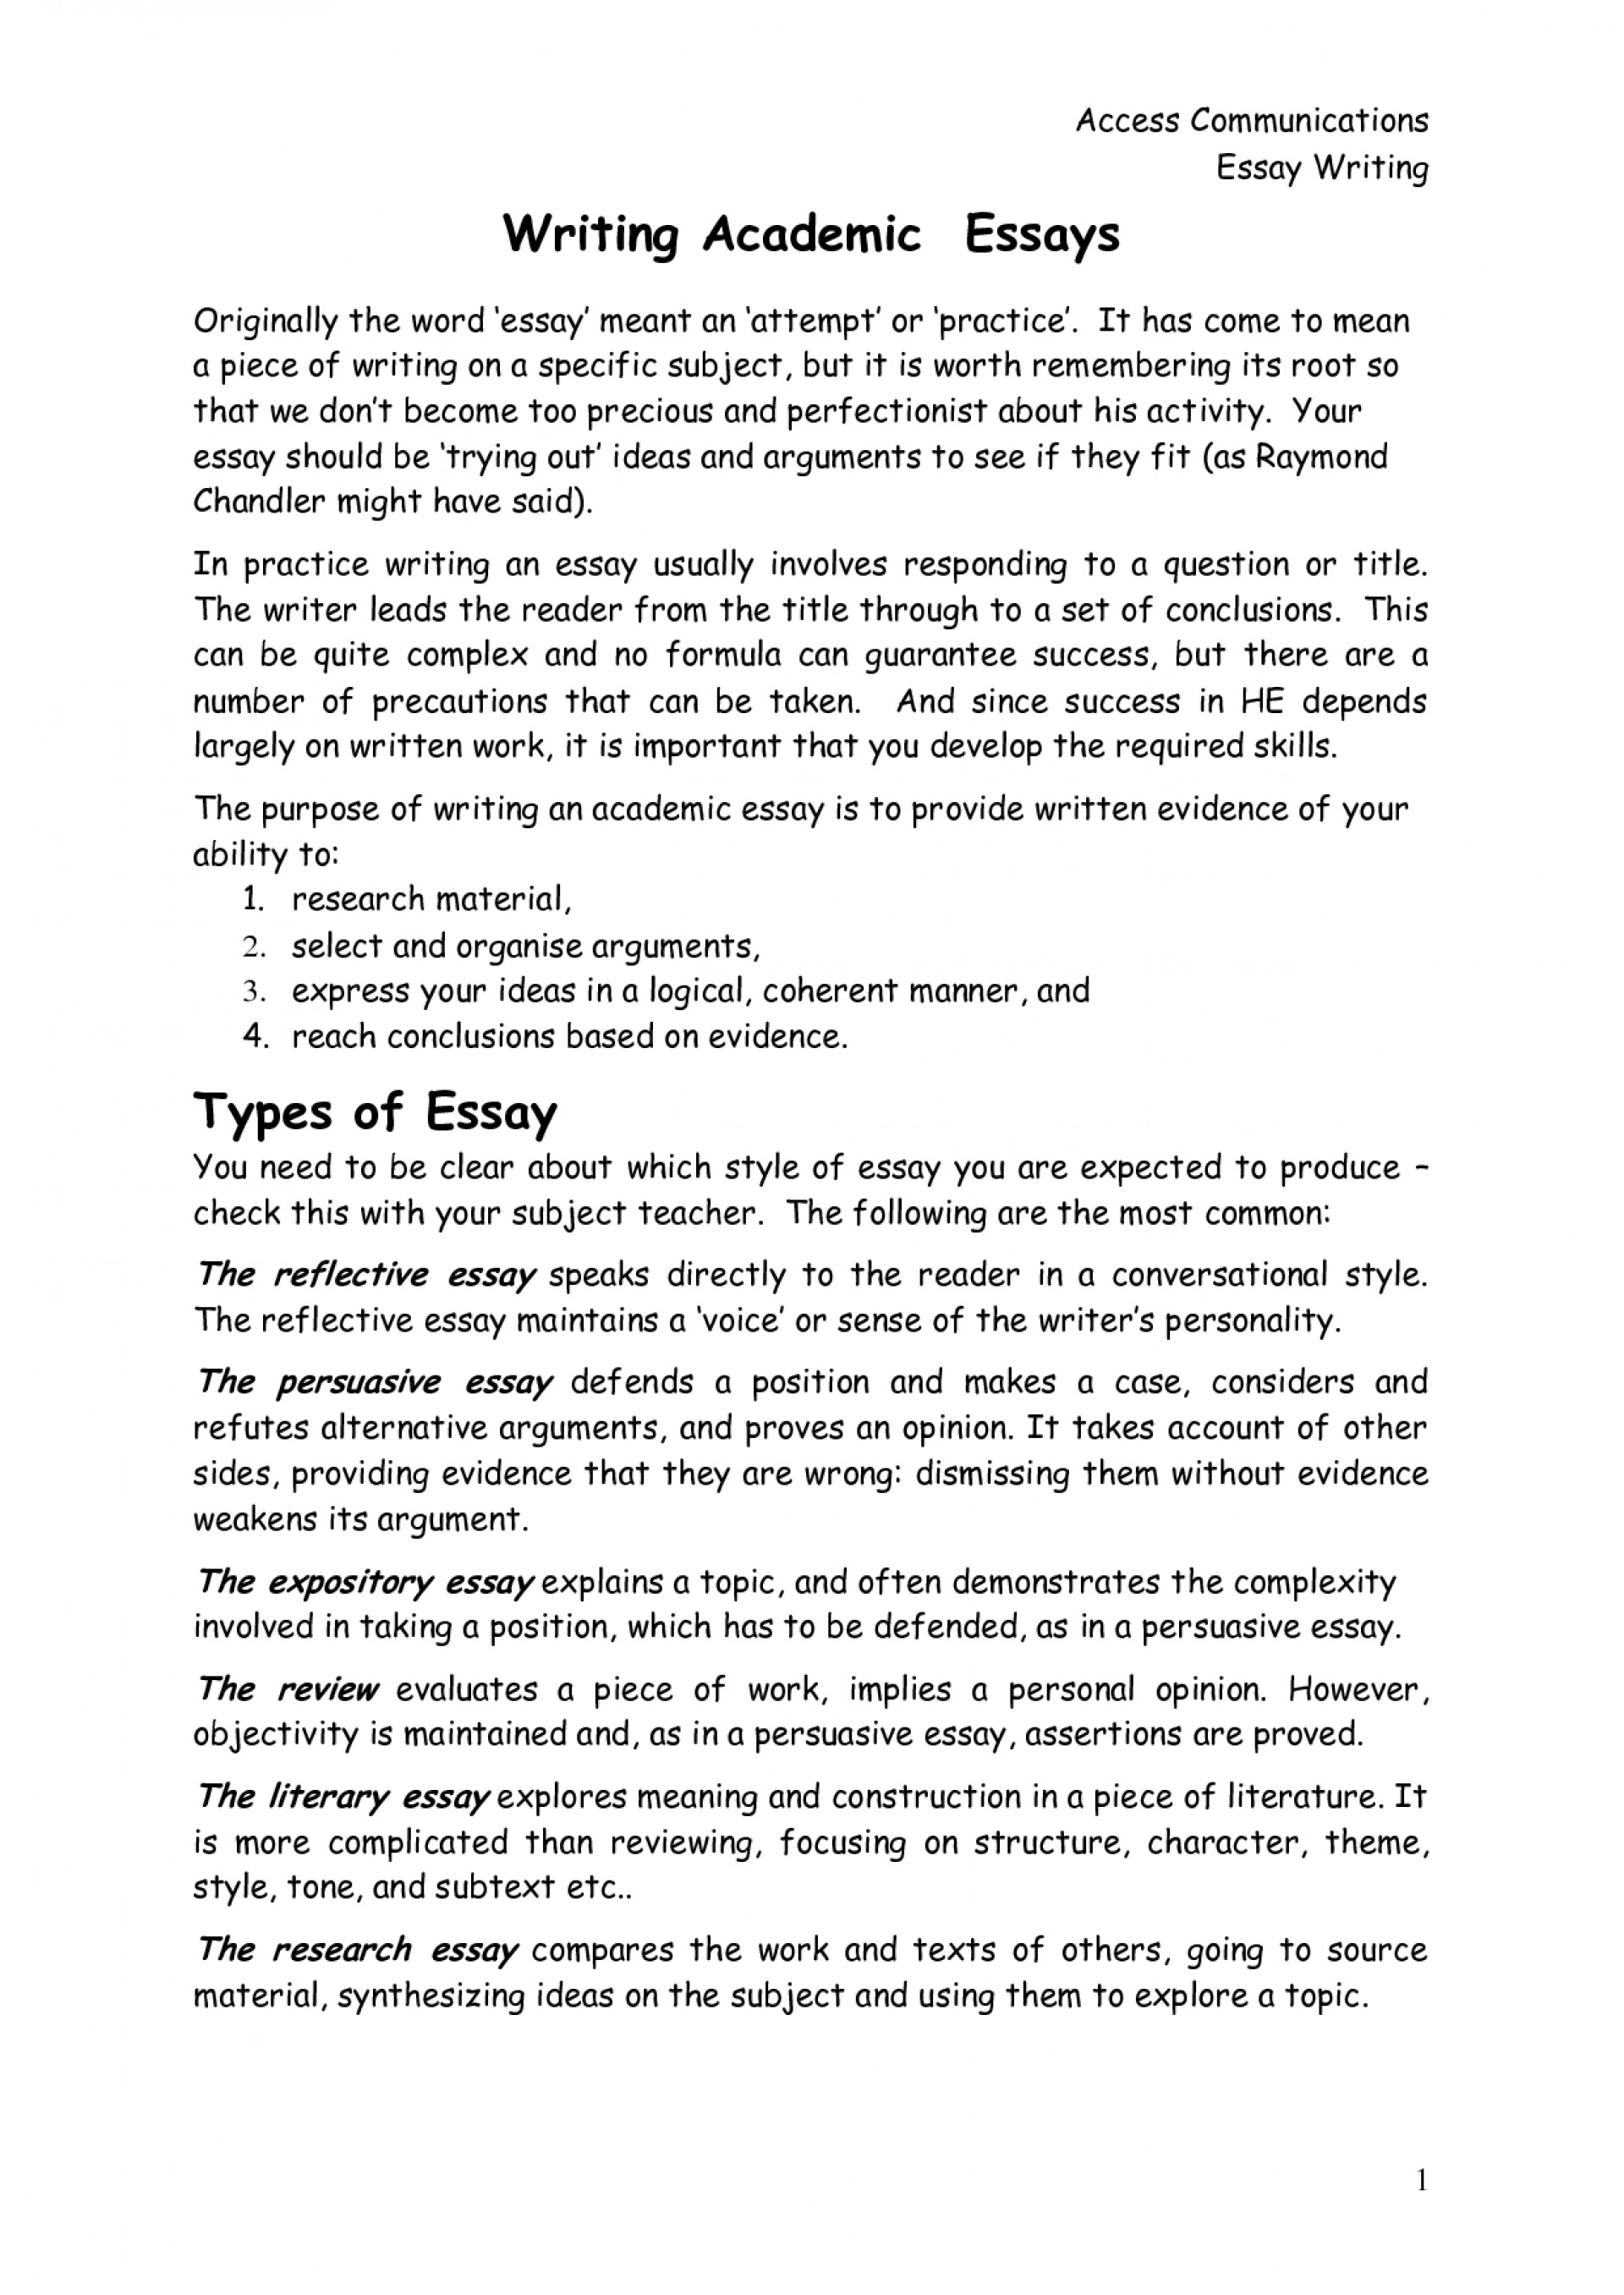 001 Essay Example What Is Good Academic To Write About Awful Writing Structure Skills Pdf 1920